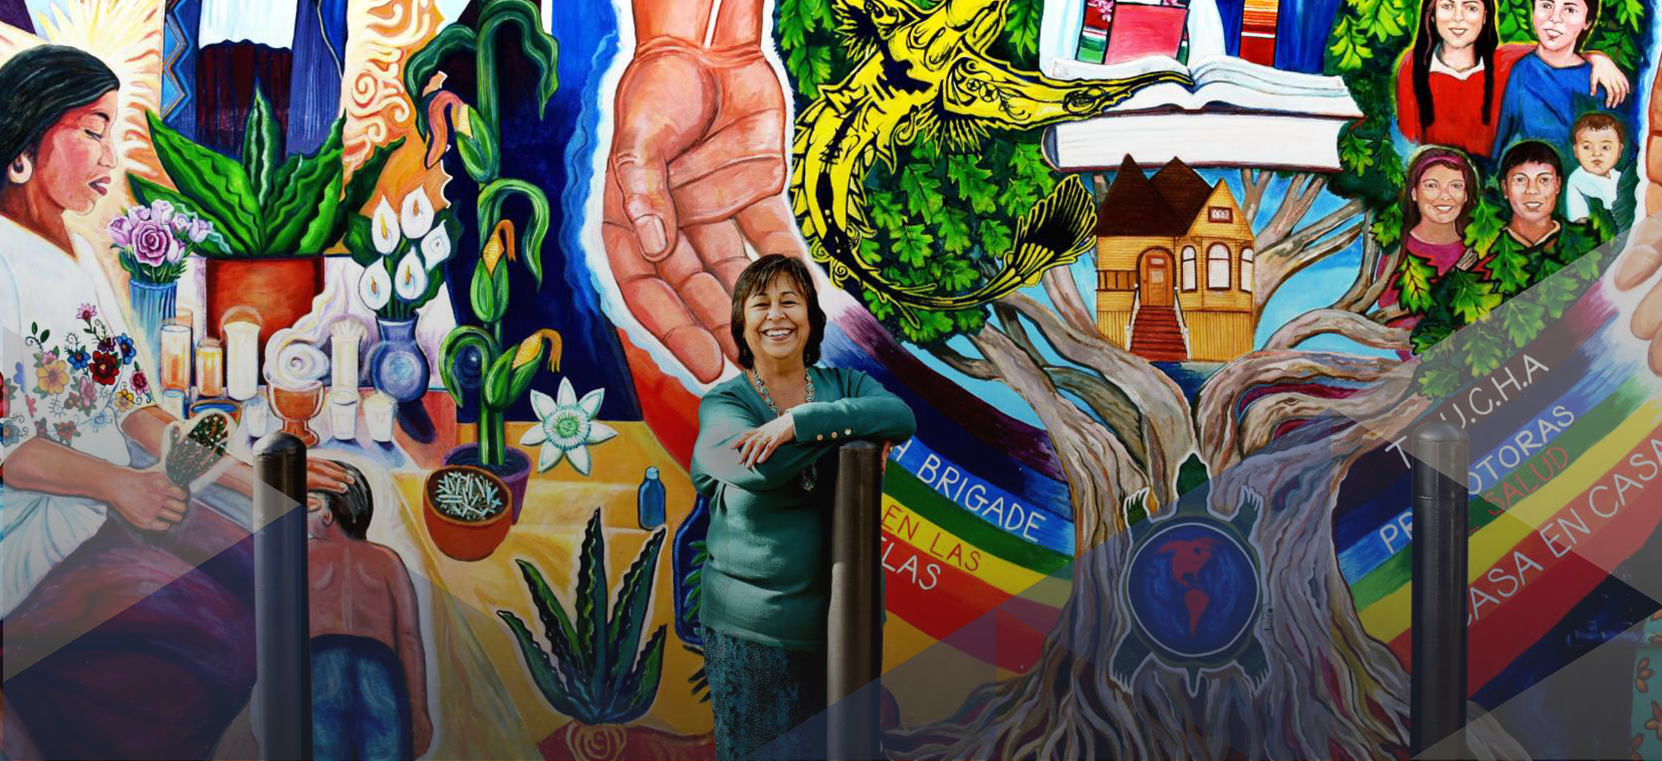 La Clinica de la Raza CEO Jane Garcia stands in front of mural